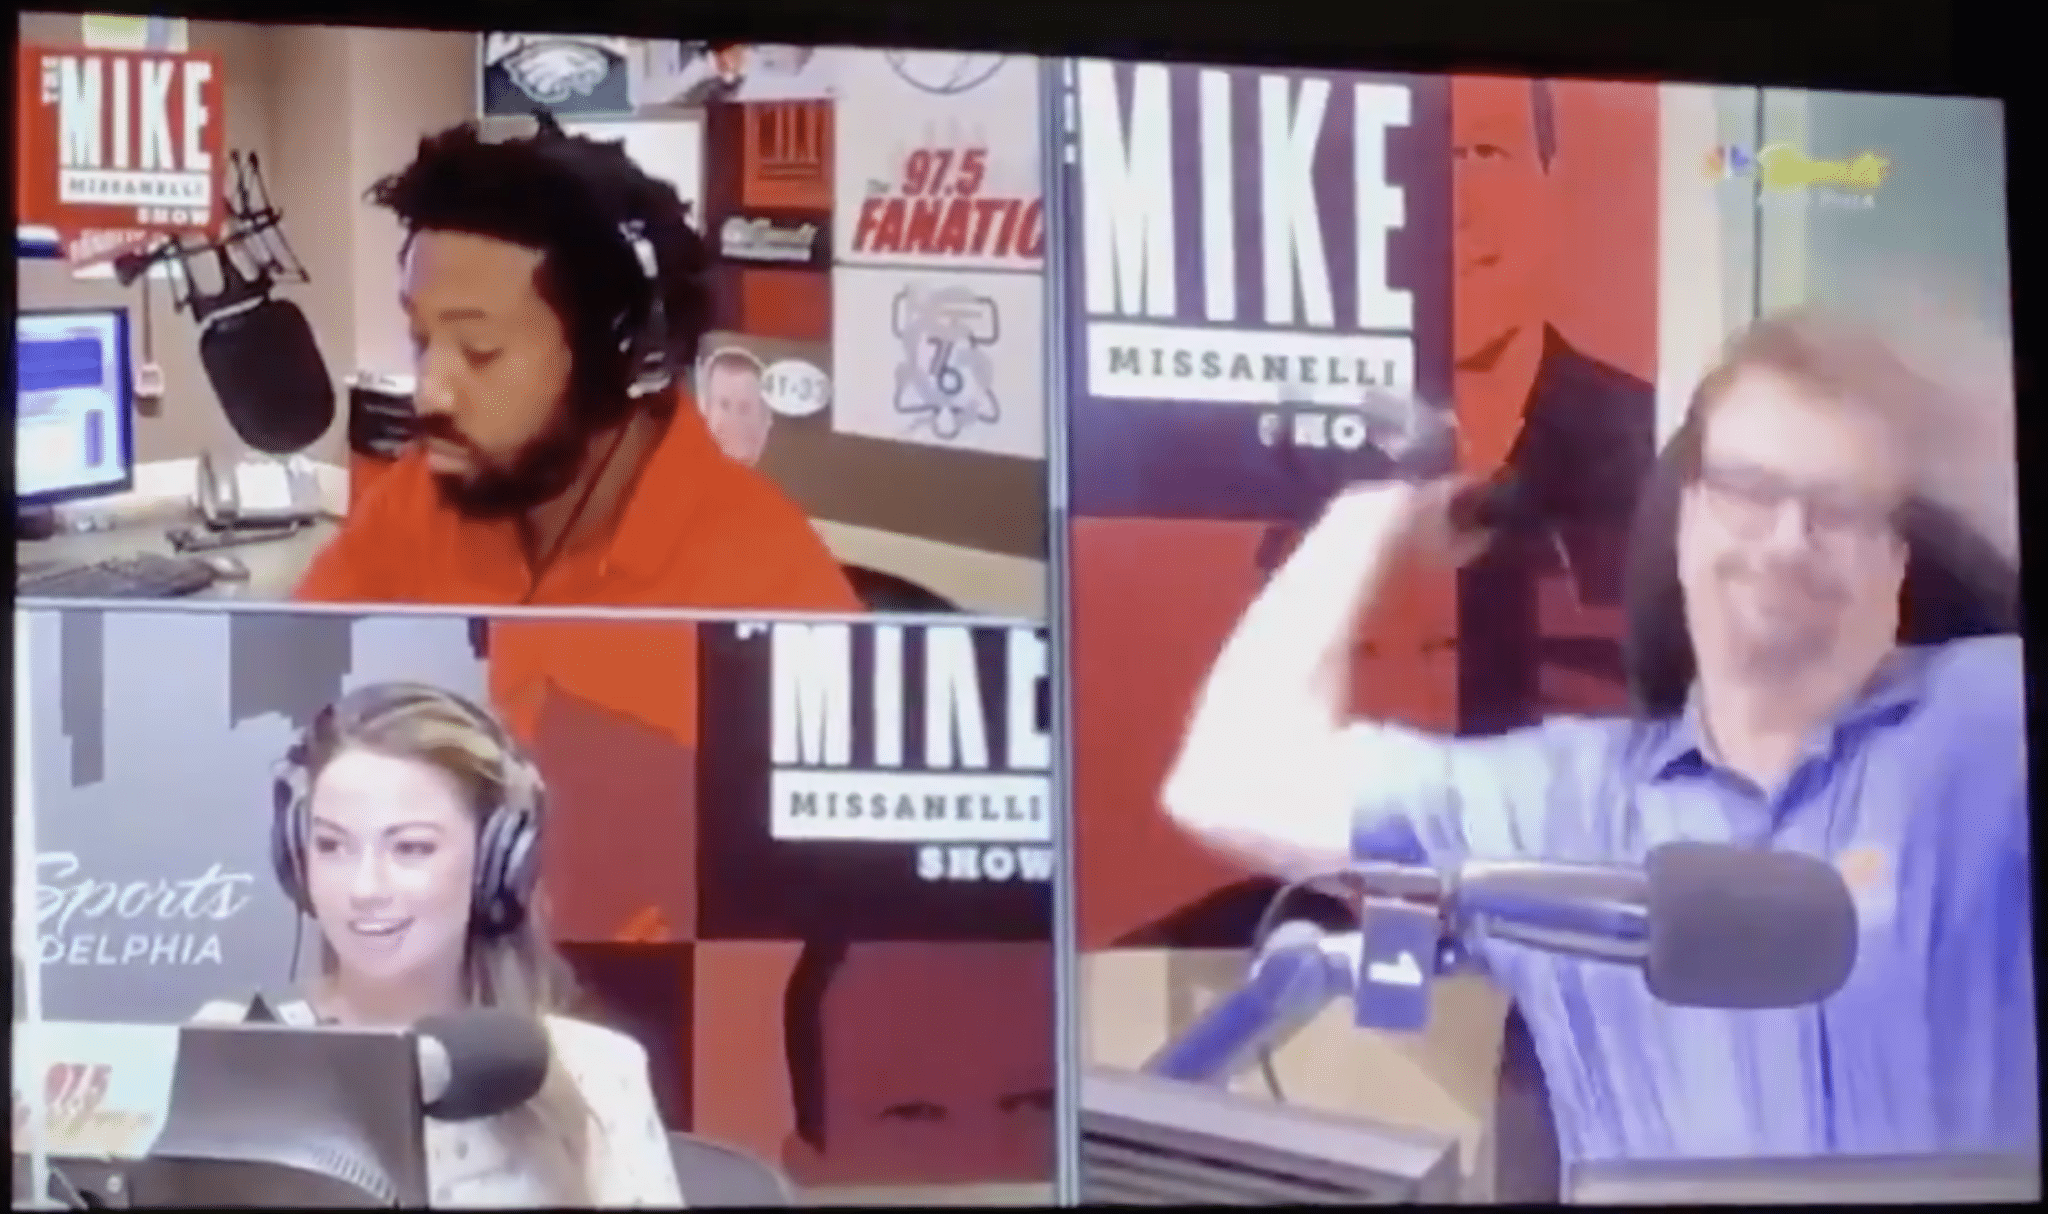 RADIO WARS: Mike Missanelli Throws Headset, Drops F-Bomb on Producer